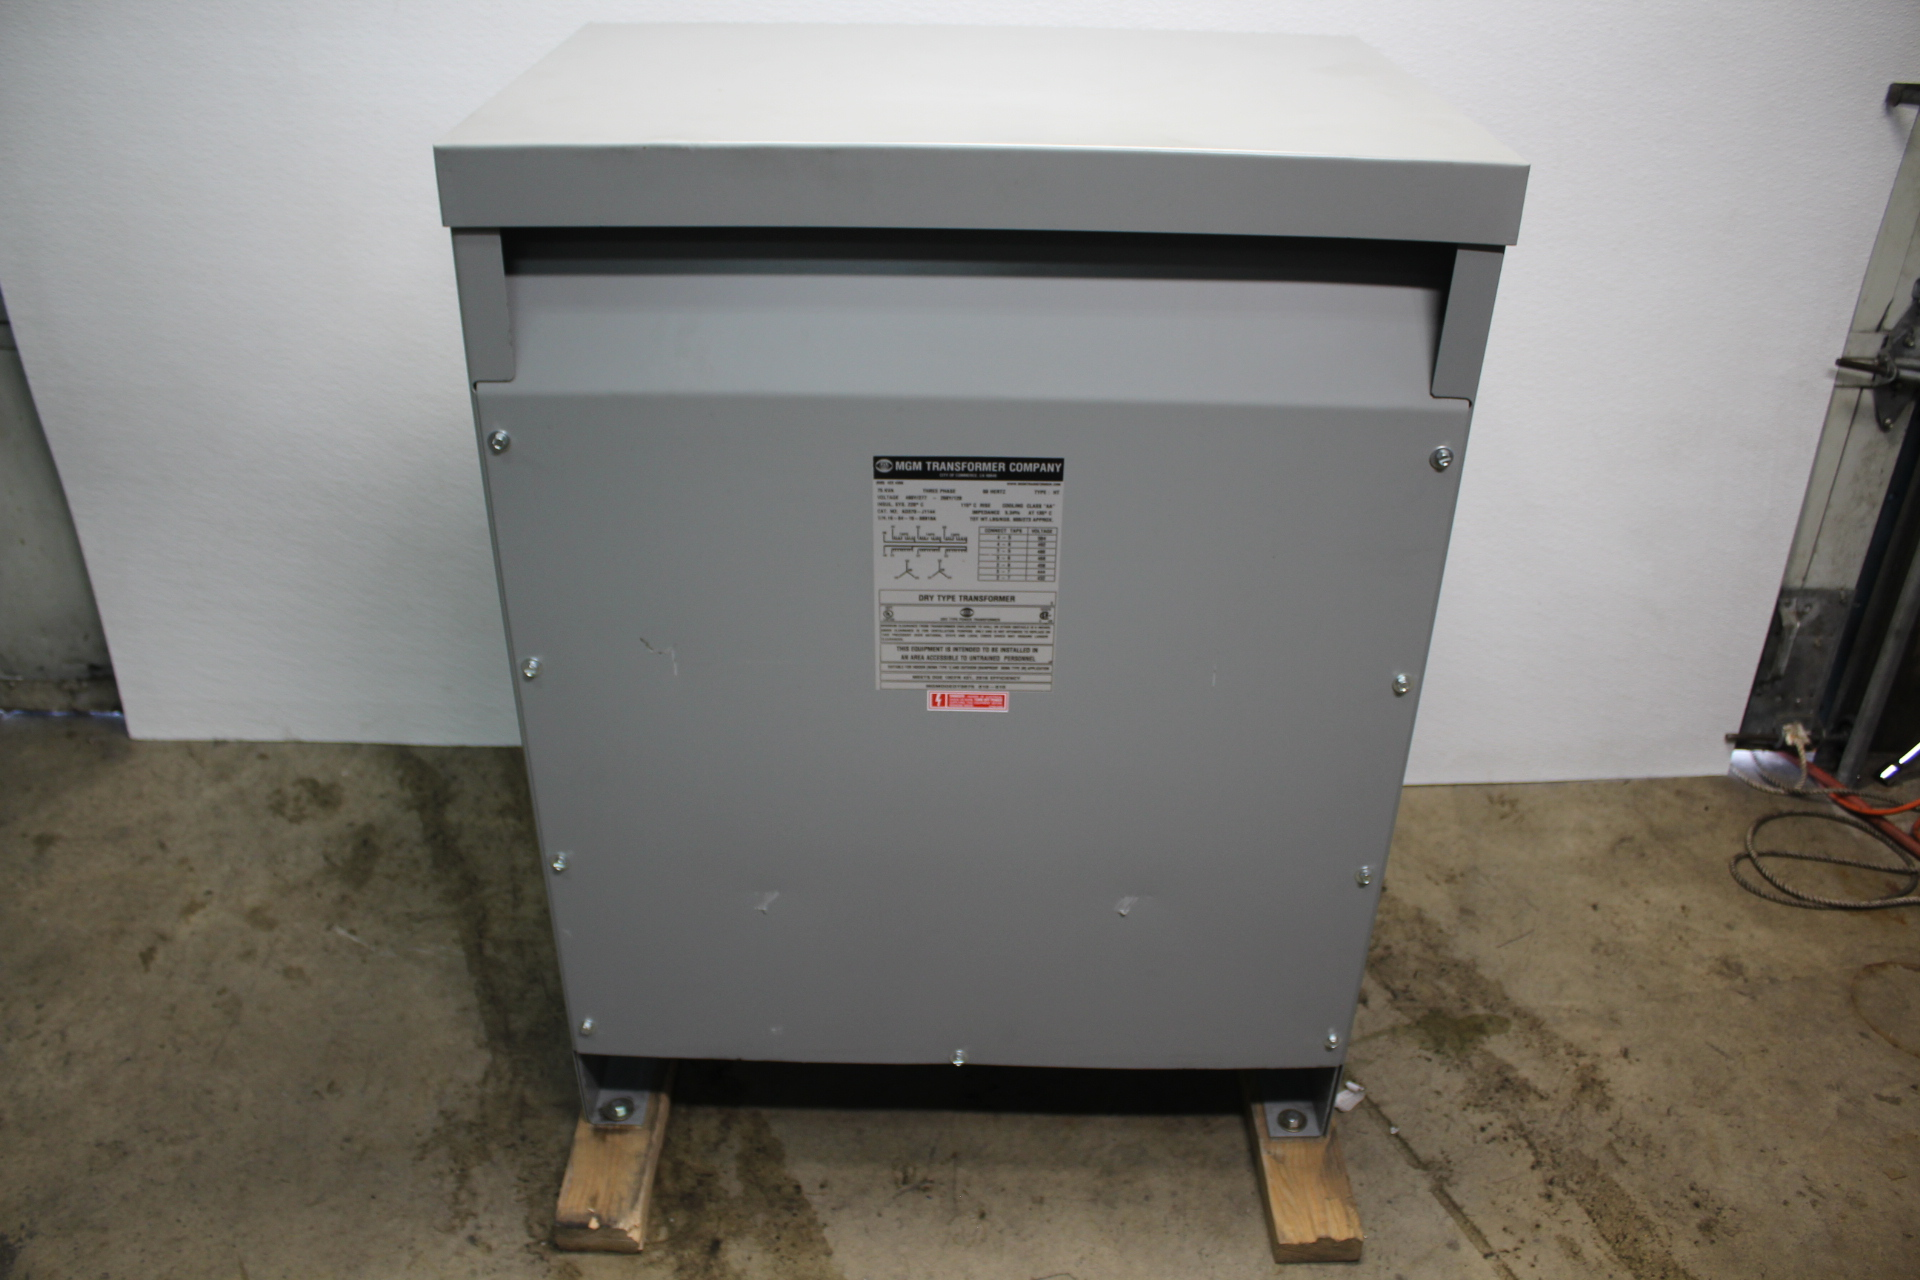 MGM Transformer Company CAT. NO. AD370-J1144 75KVA DRY TYPE TRANSFORMER